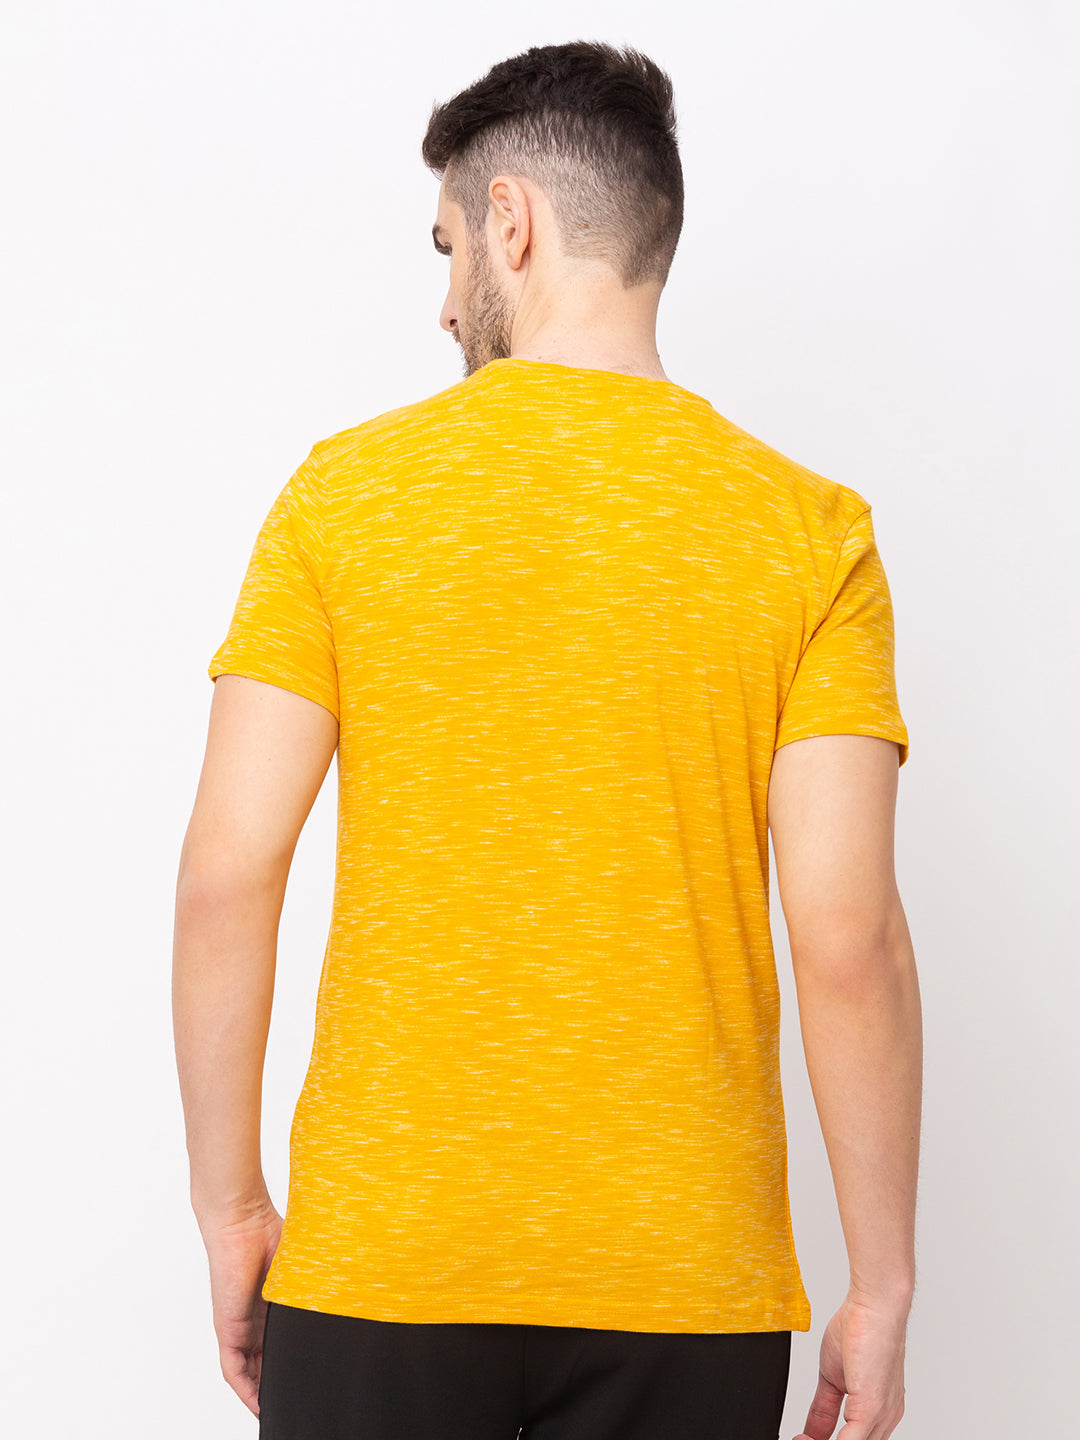 Globus Yellow Solid T-Shirt-3